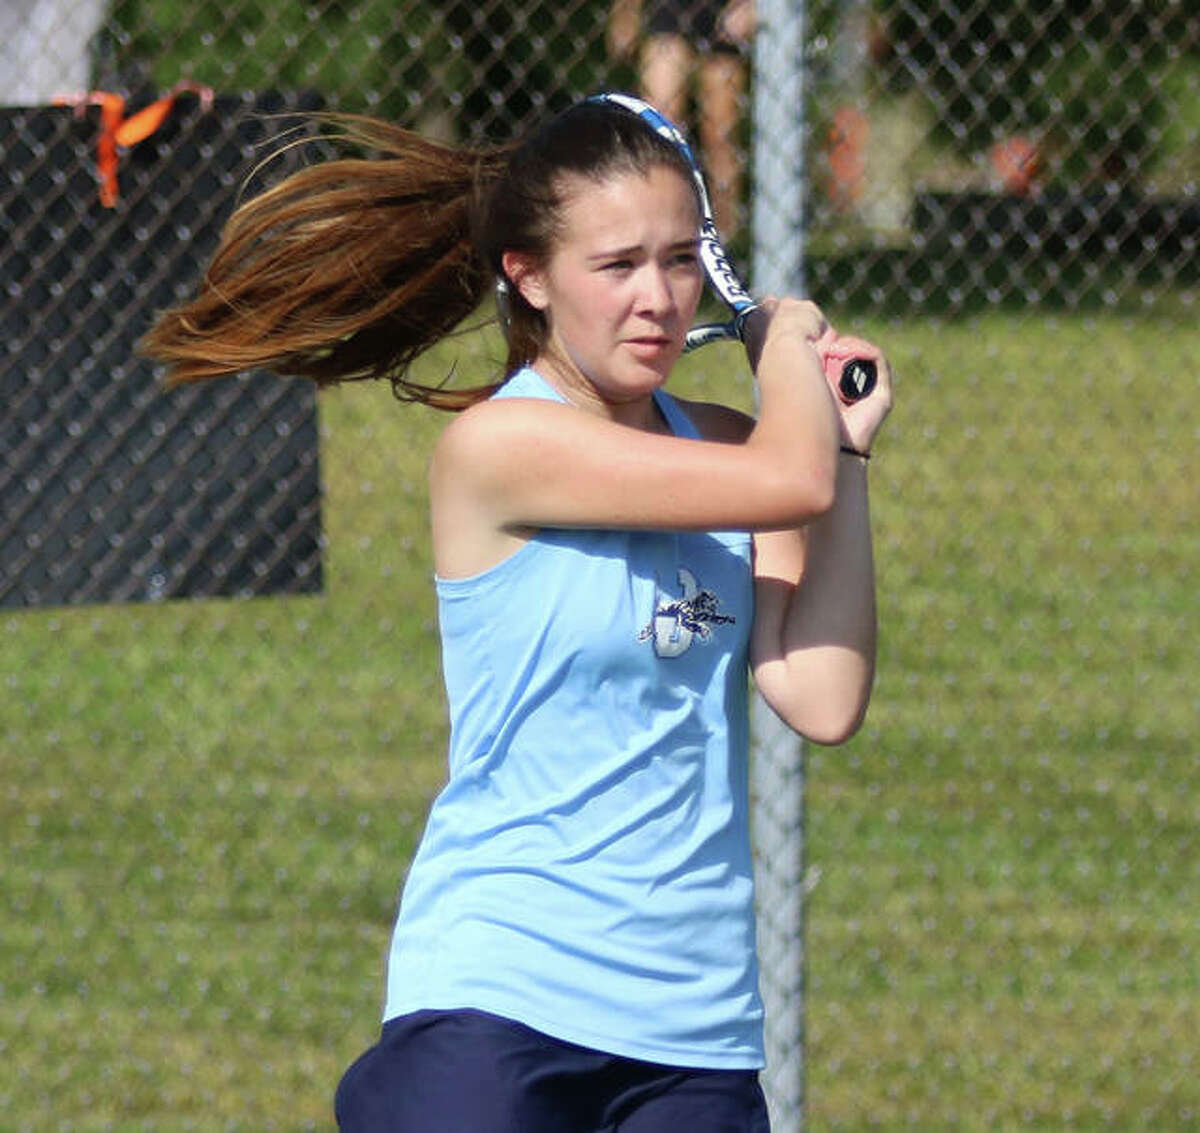 Jersey junior Lily Ingram, watches her backhand return during a Sept. 25 dual at Edwardsville, teamed with Michelle Maag to win the program's first sectional title on Saturday at the Quincy Notre Dame Class 1A Sectional.